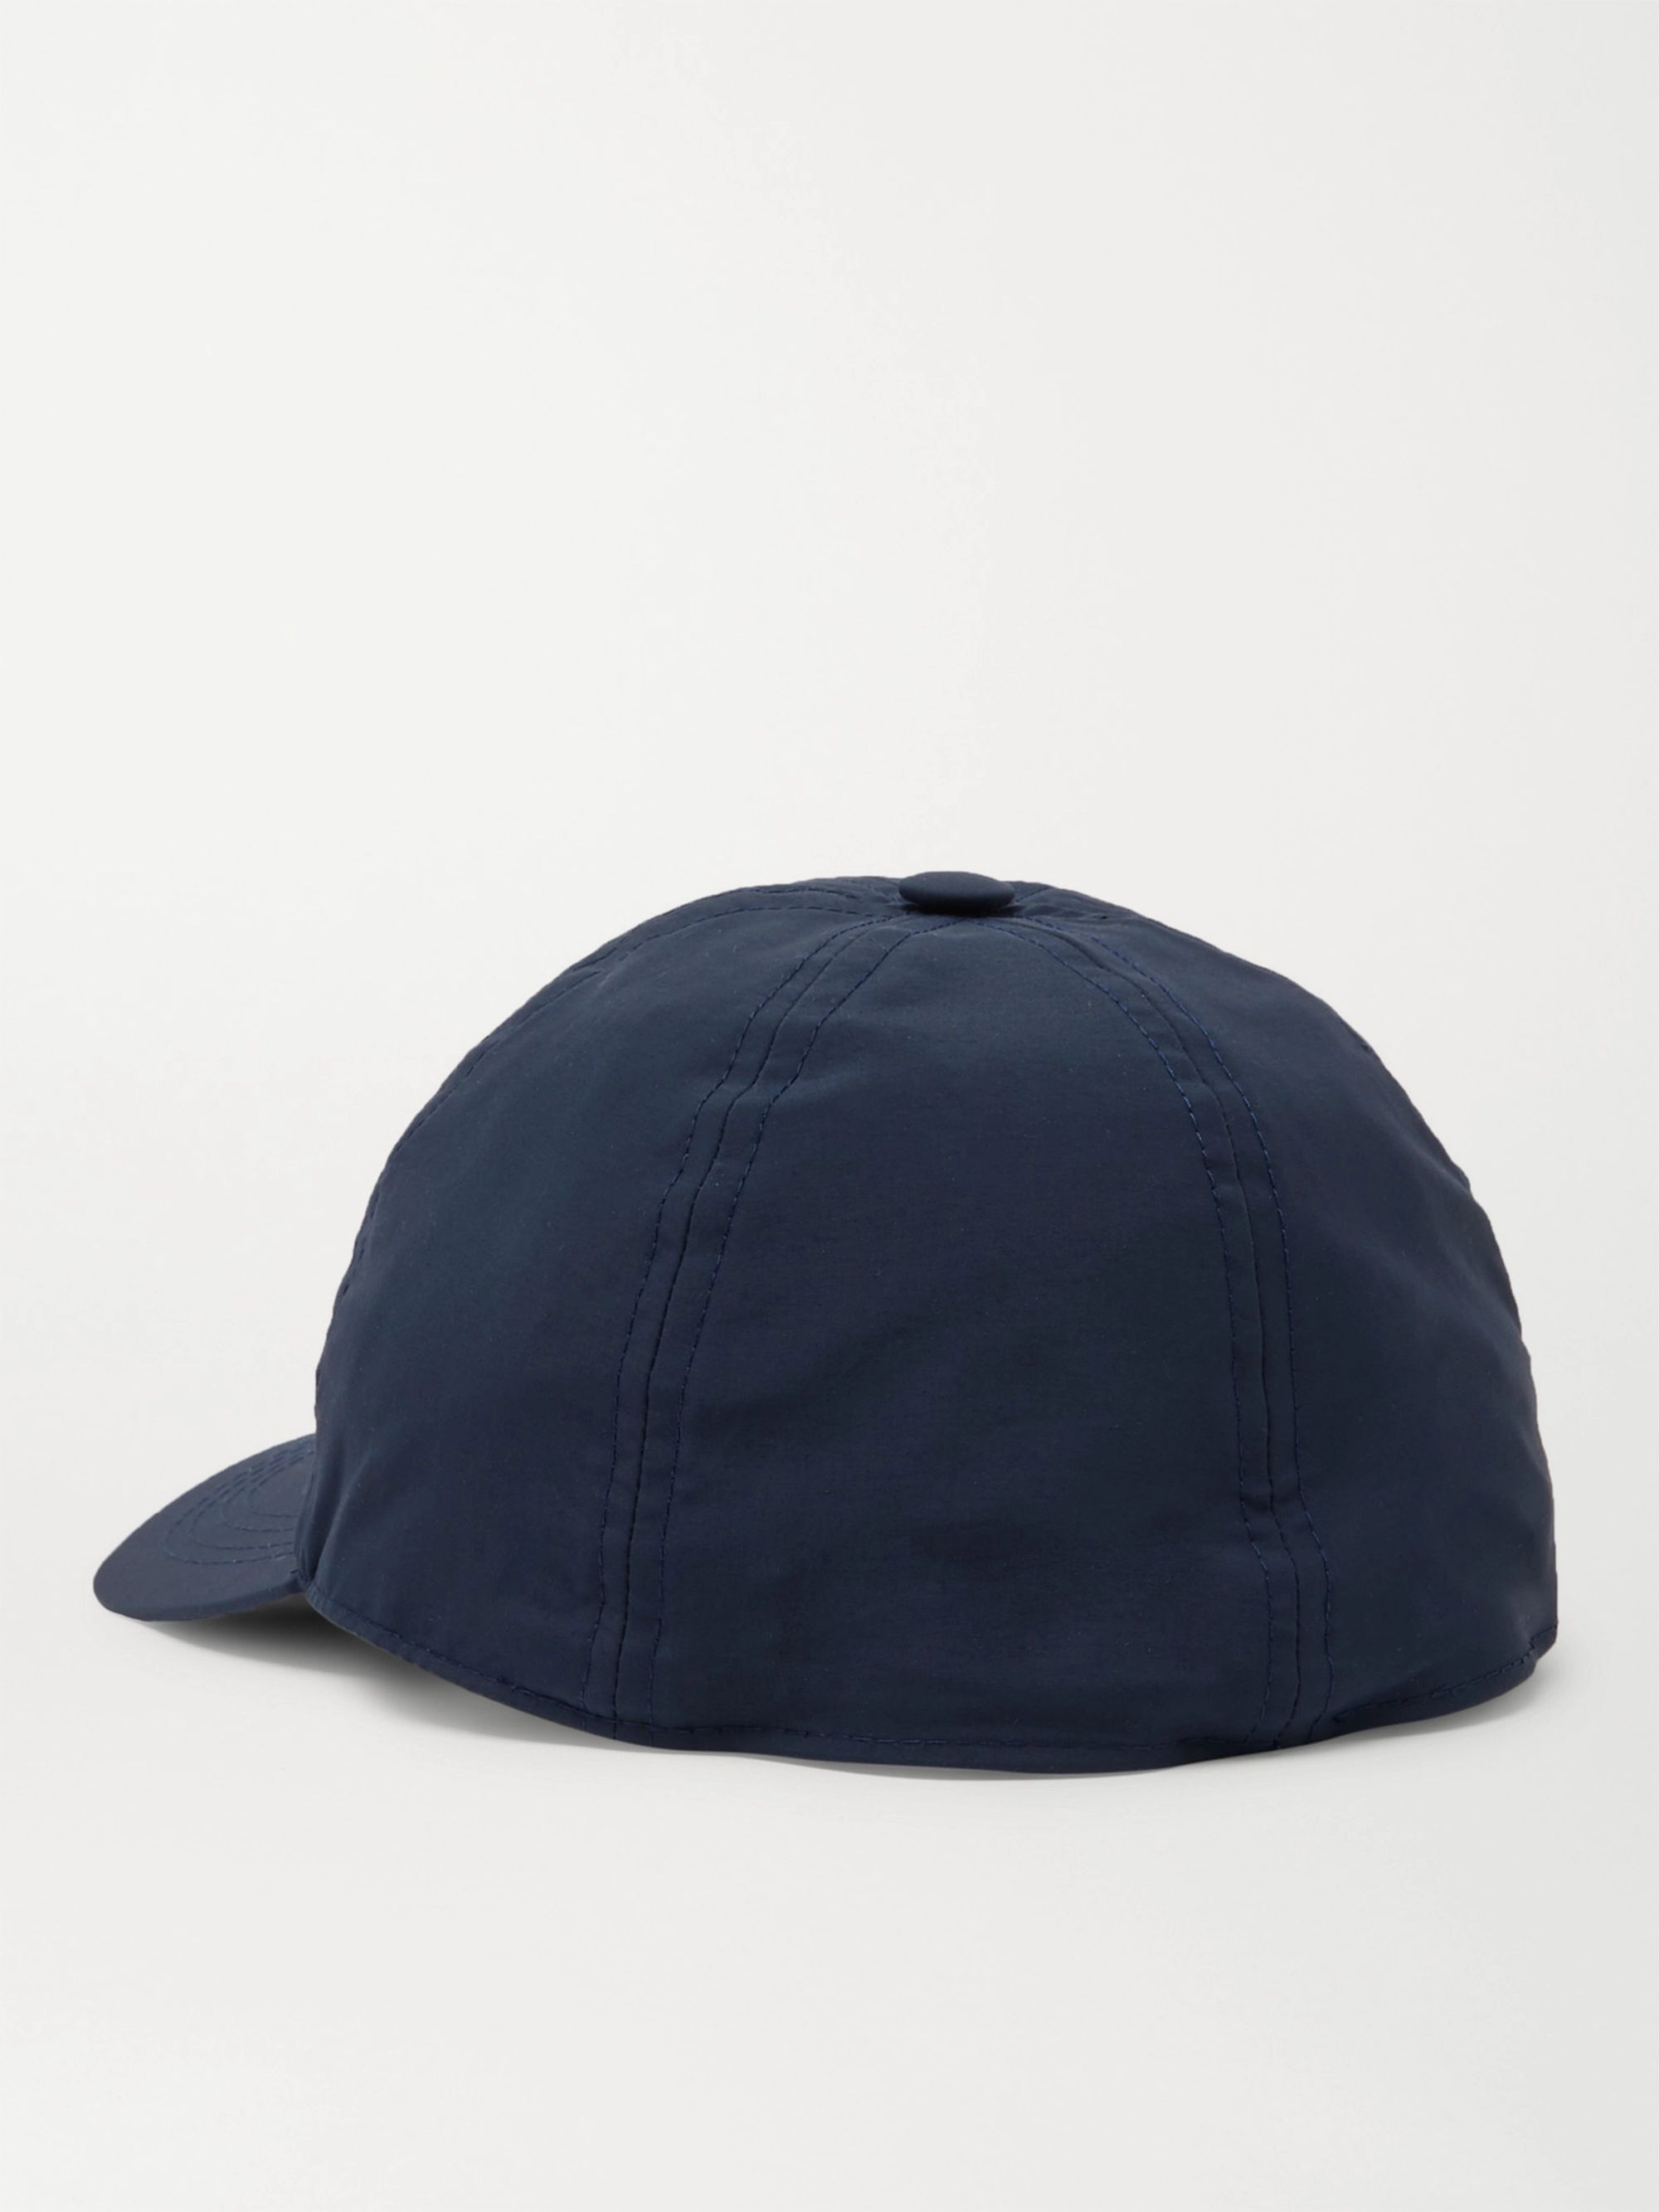 LOCK & CO HATTERS Rimini Water-Repellent Nylon Baseball Cap